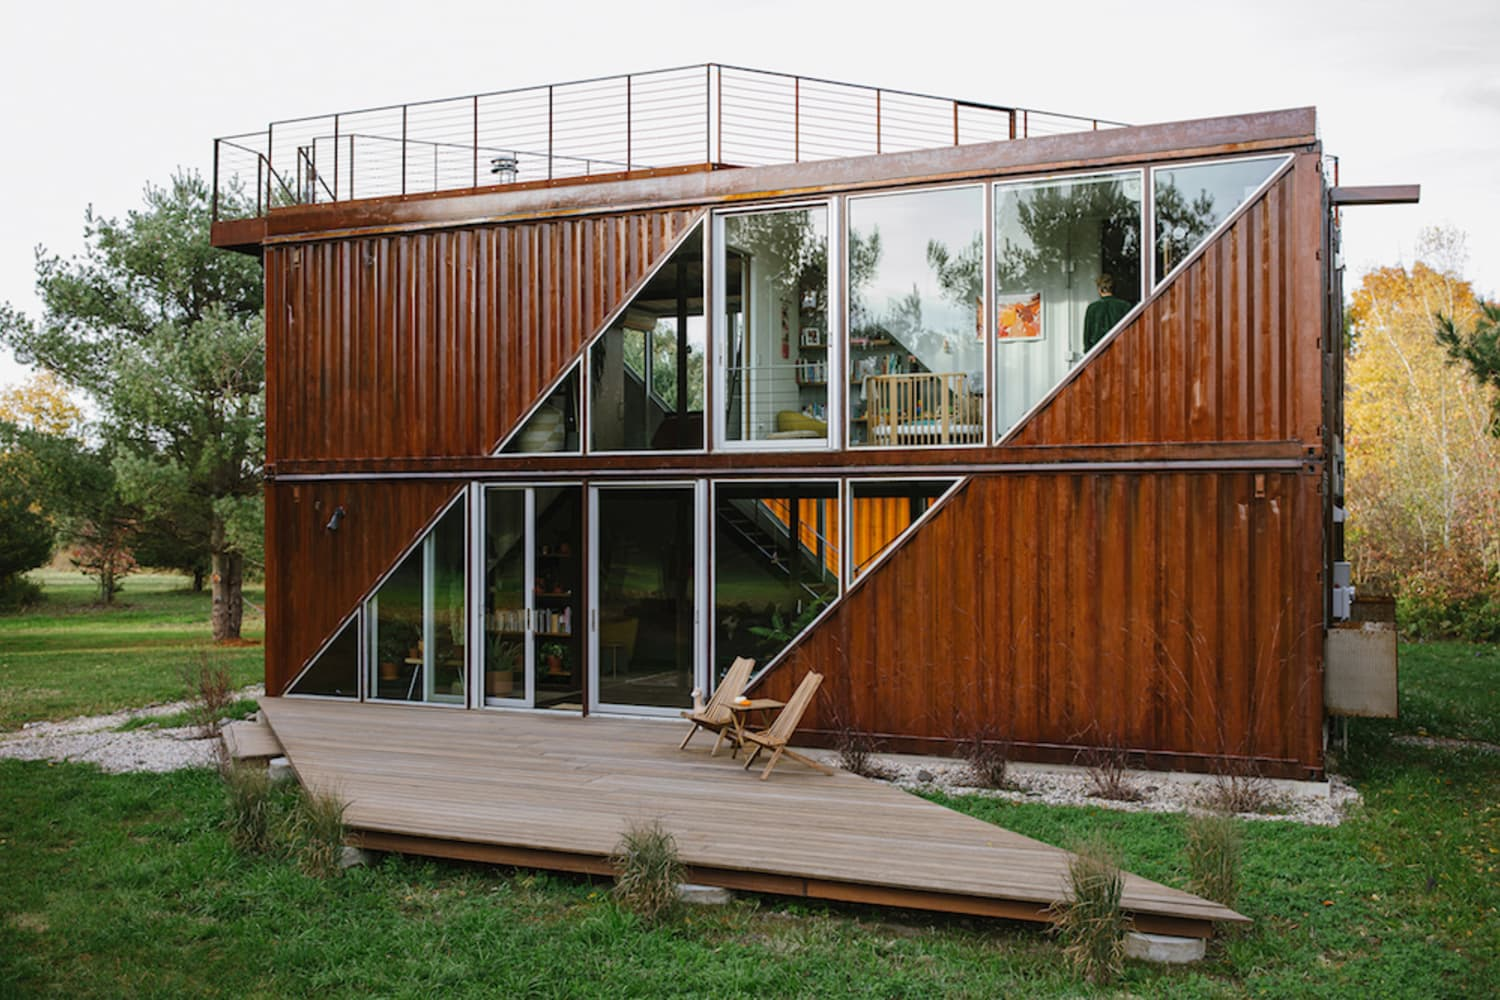 Inside a Whimsical Two-Story Home Built From Shipping Containers